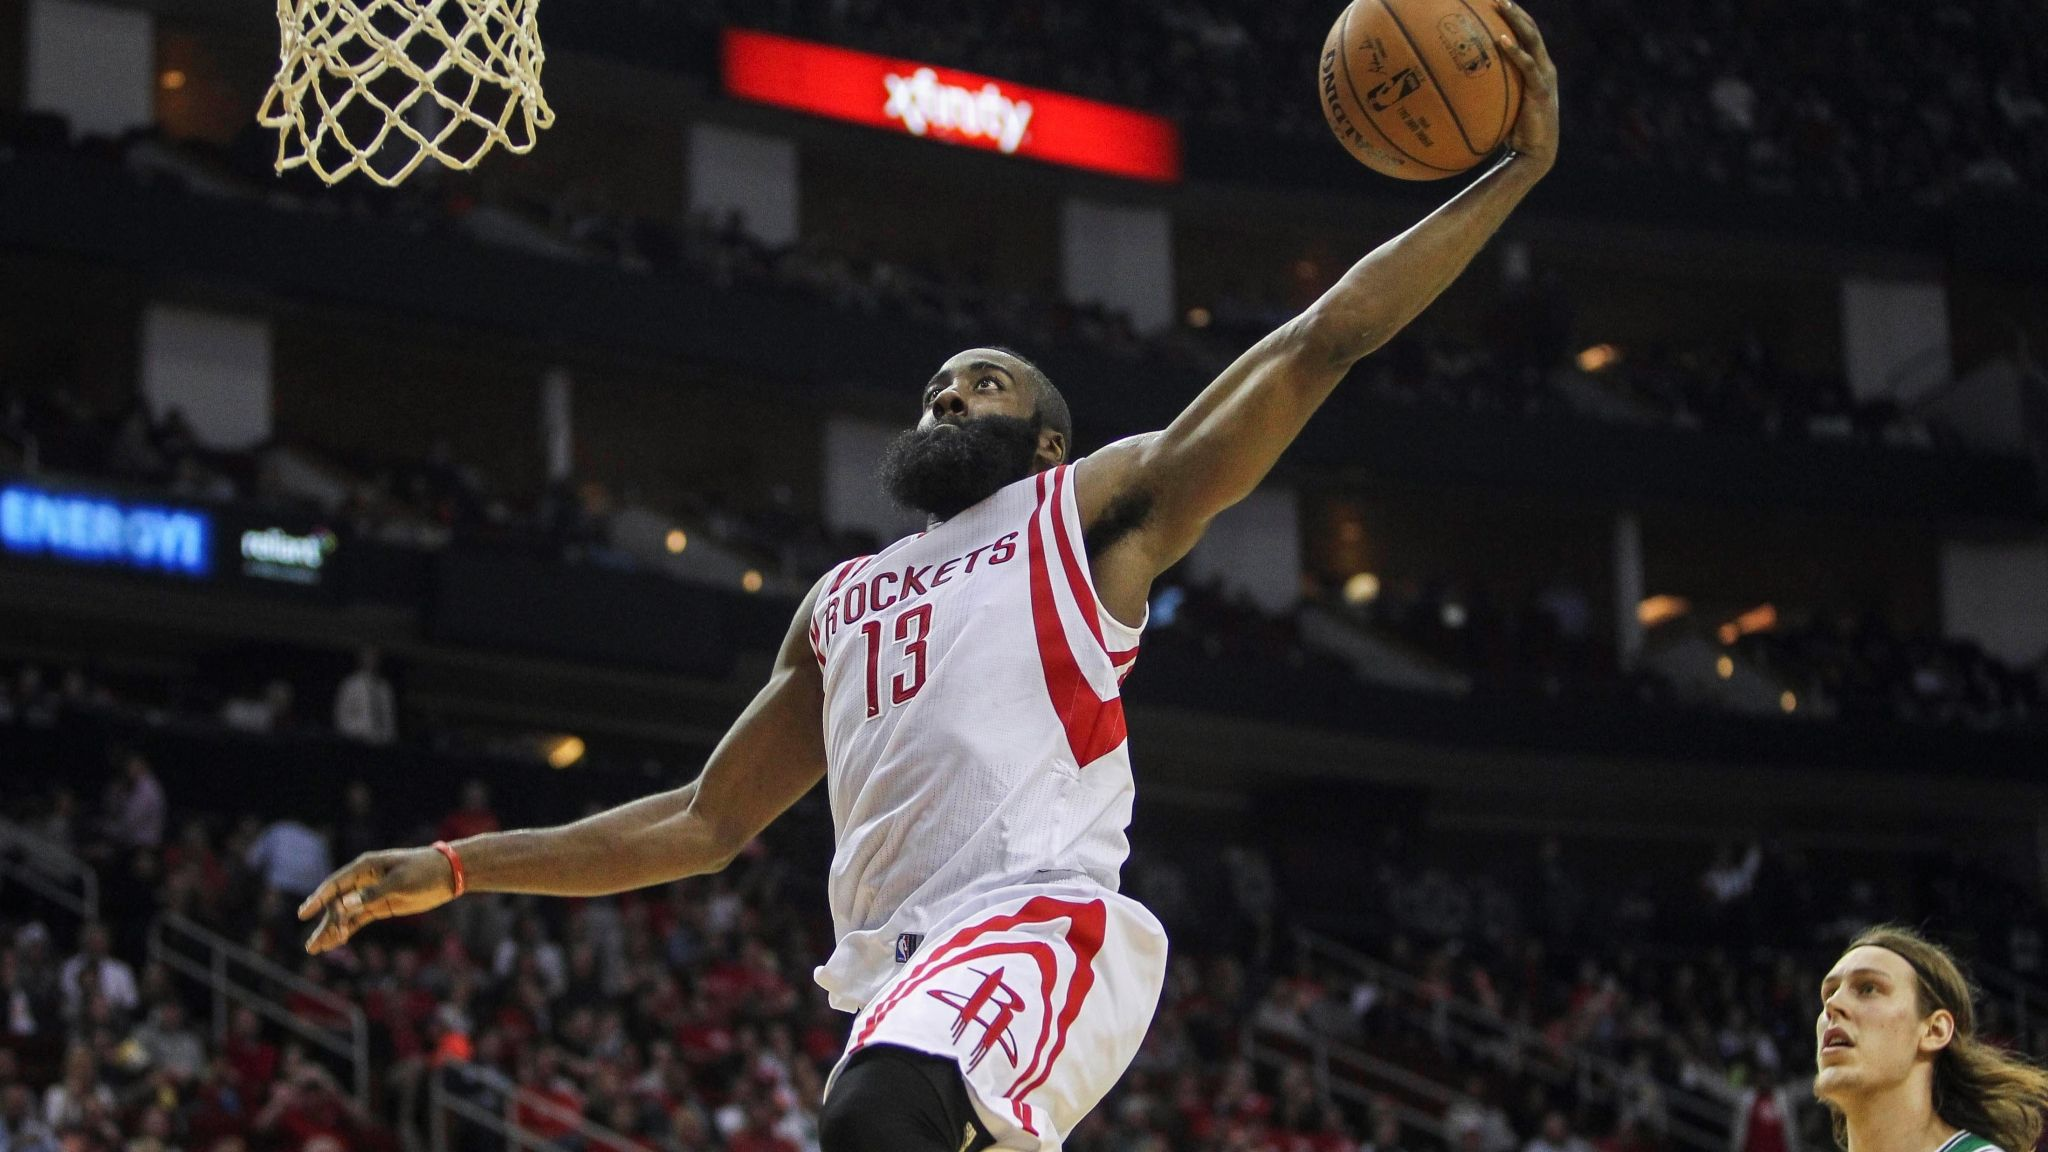 james harden wallpaper full hd James harden, Hardened